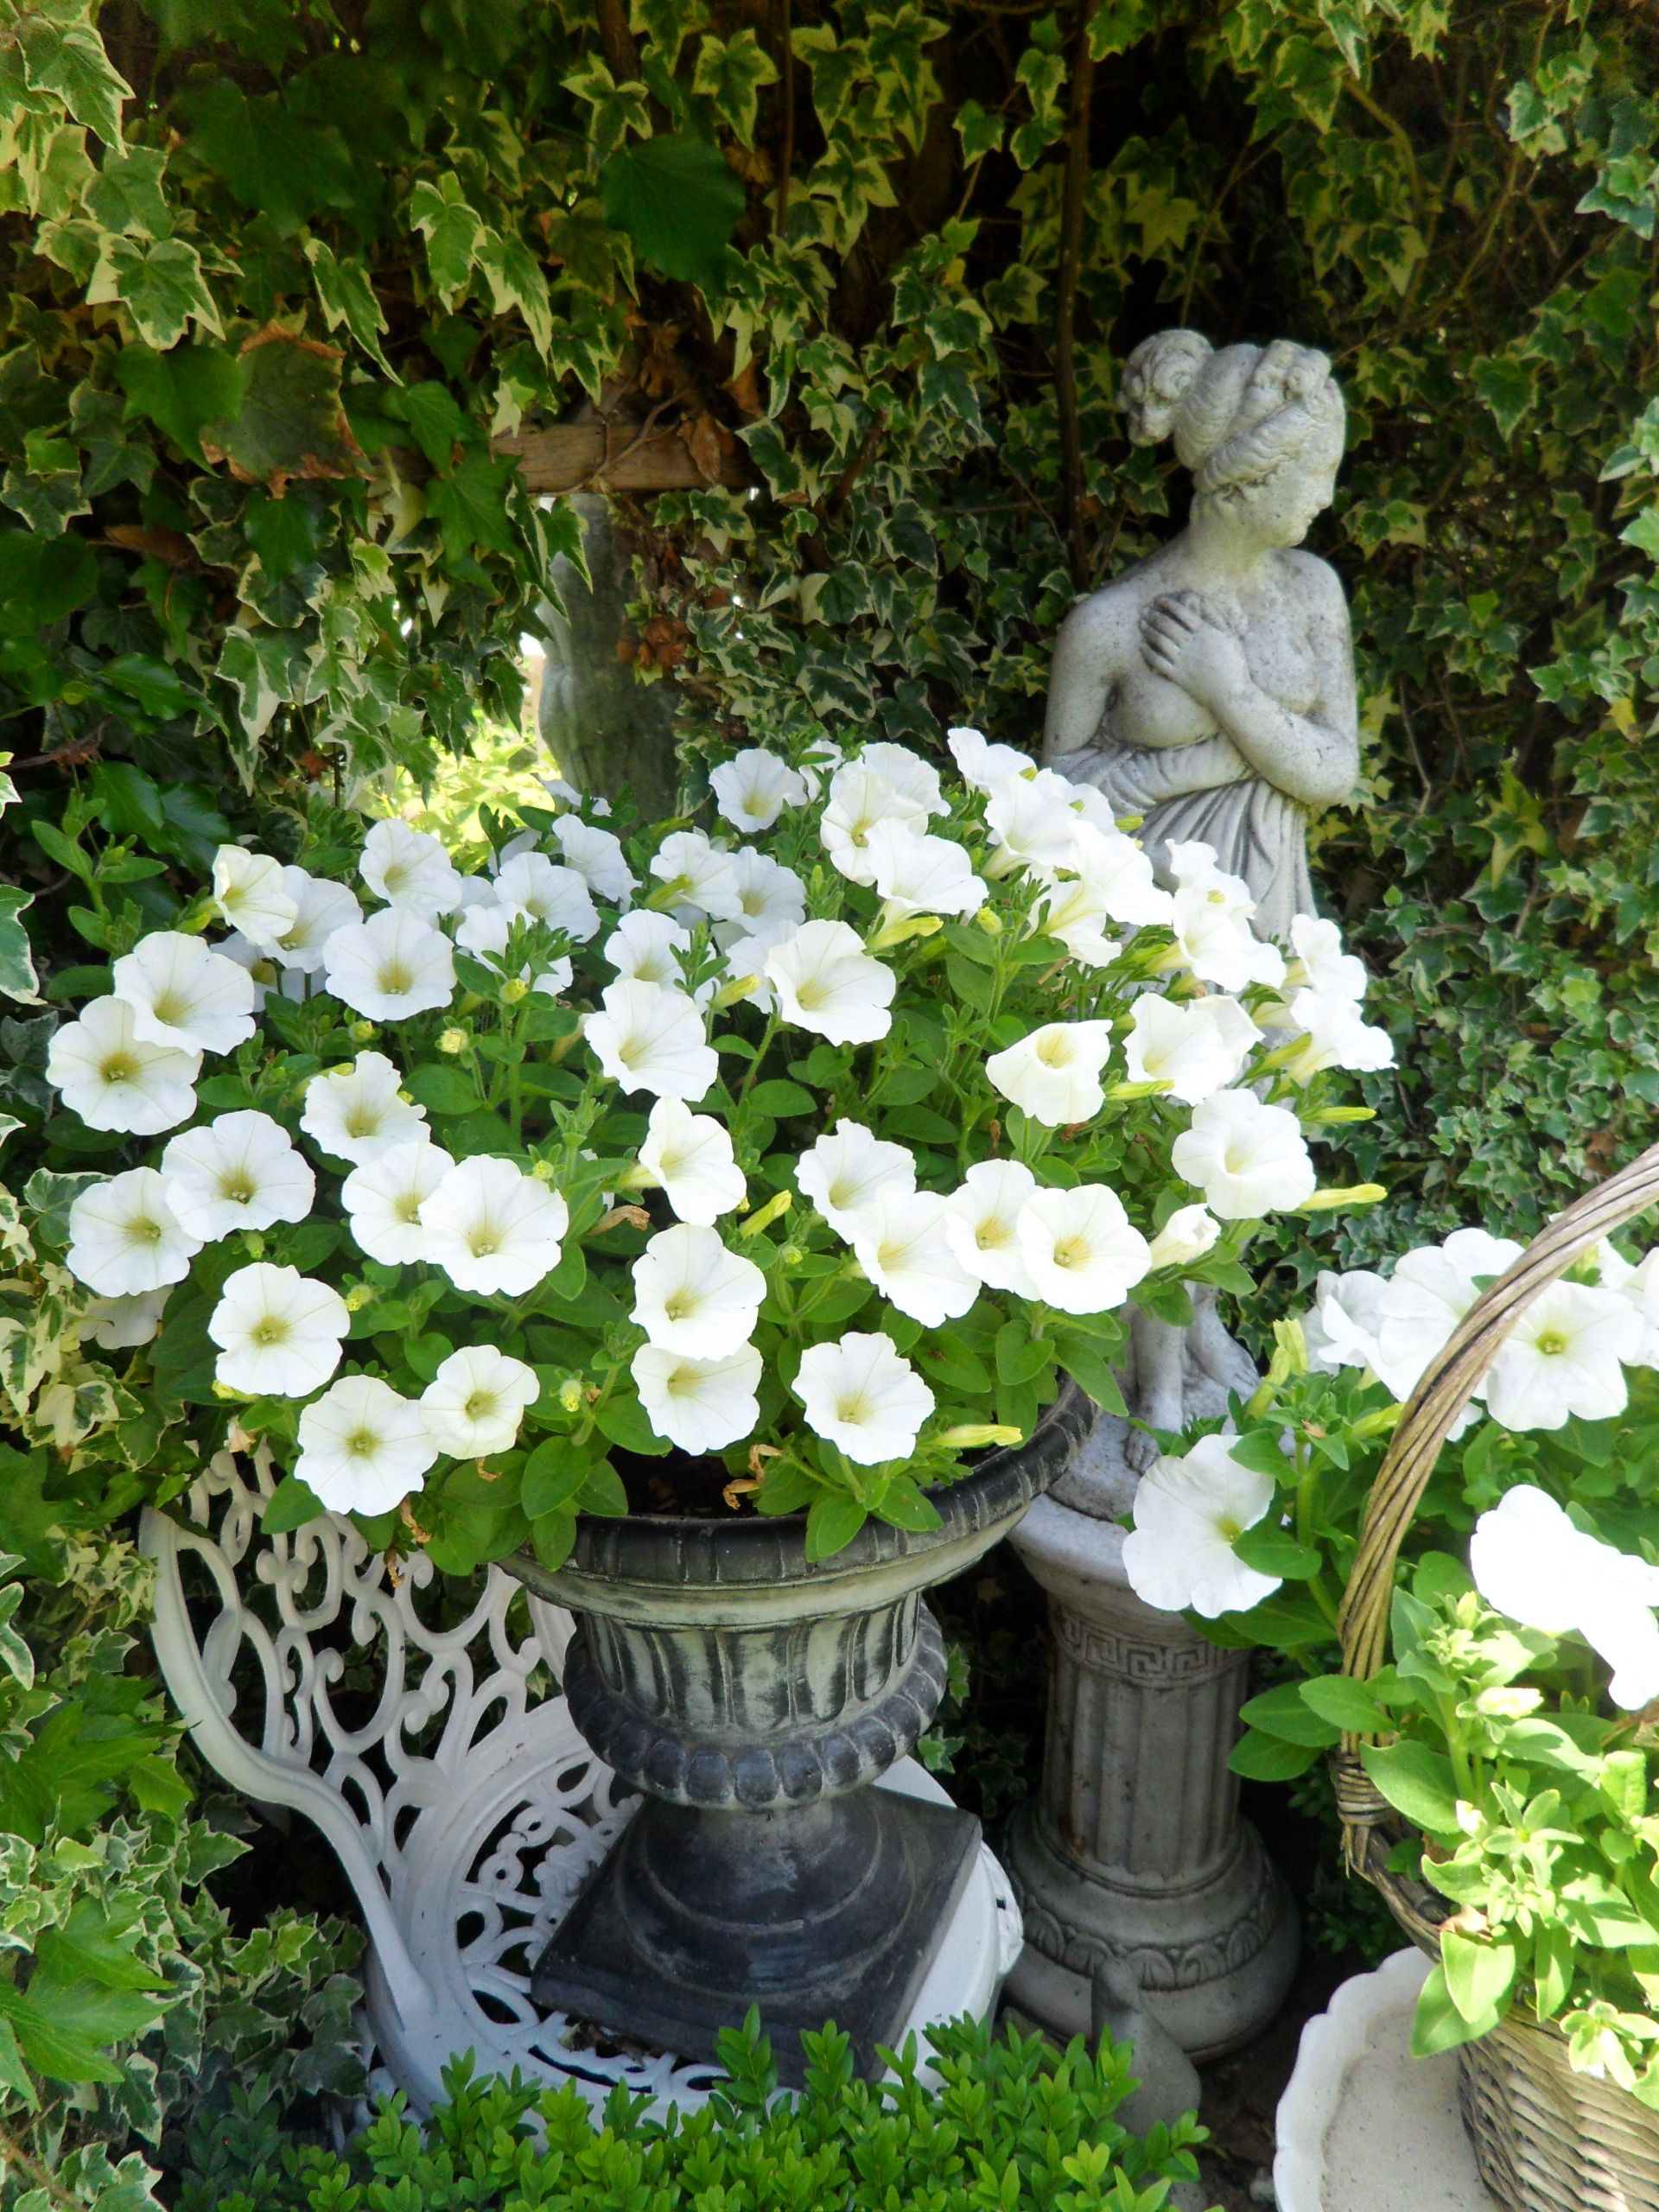 Garden container flowers simply stunning white petunias annuals container flowers simply stunning white petunias annuals izmirmasajfo